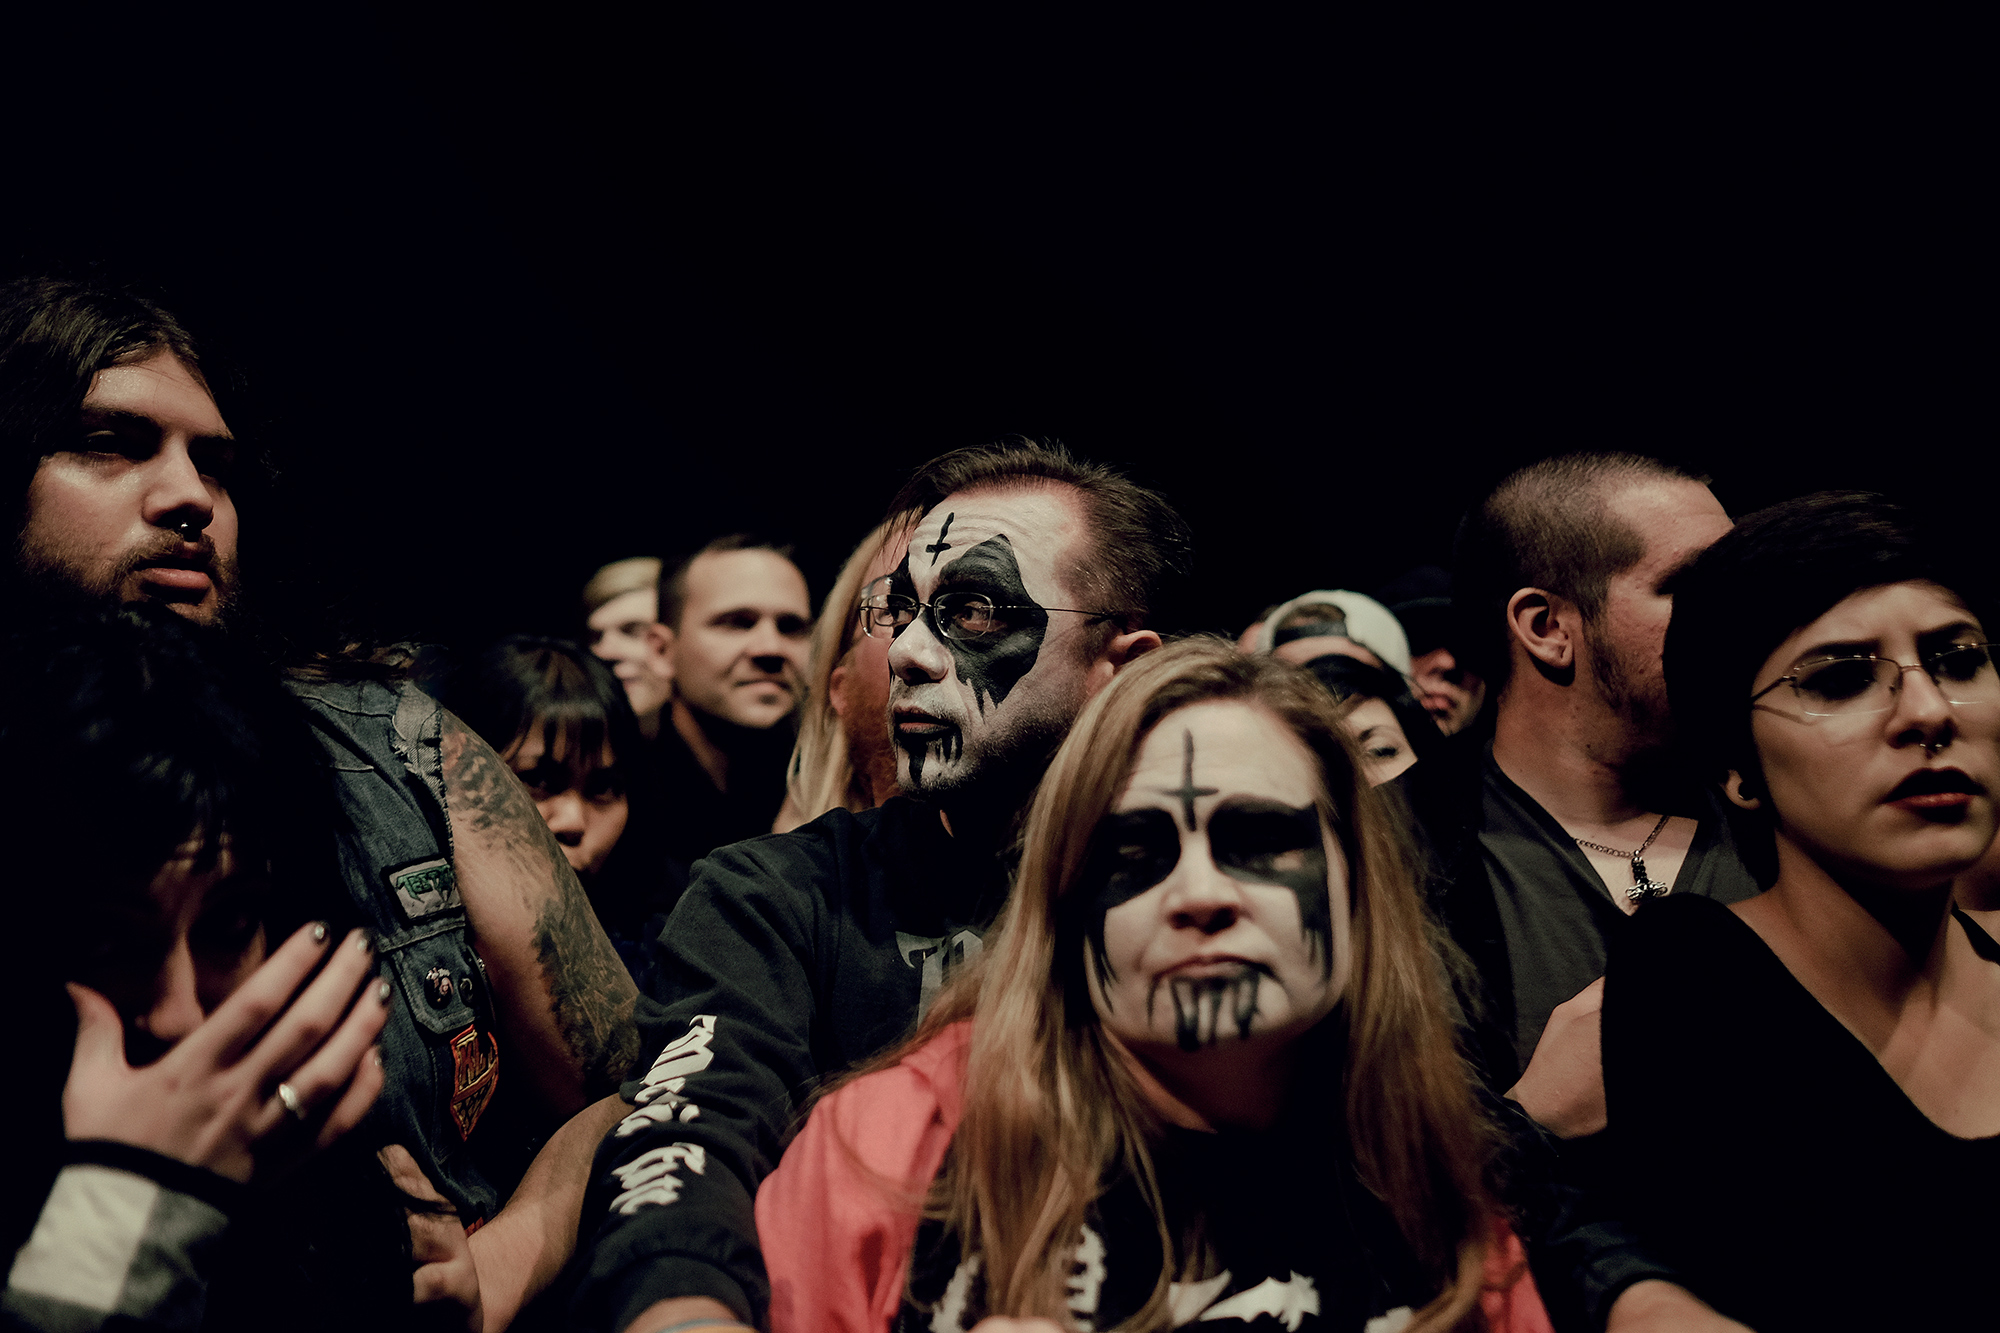 Metalhead parents at the metal show, photographed by music photographer, Todd Spoth.